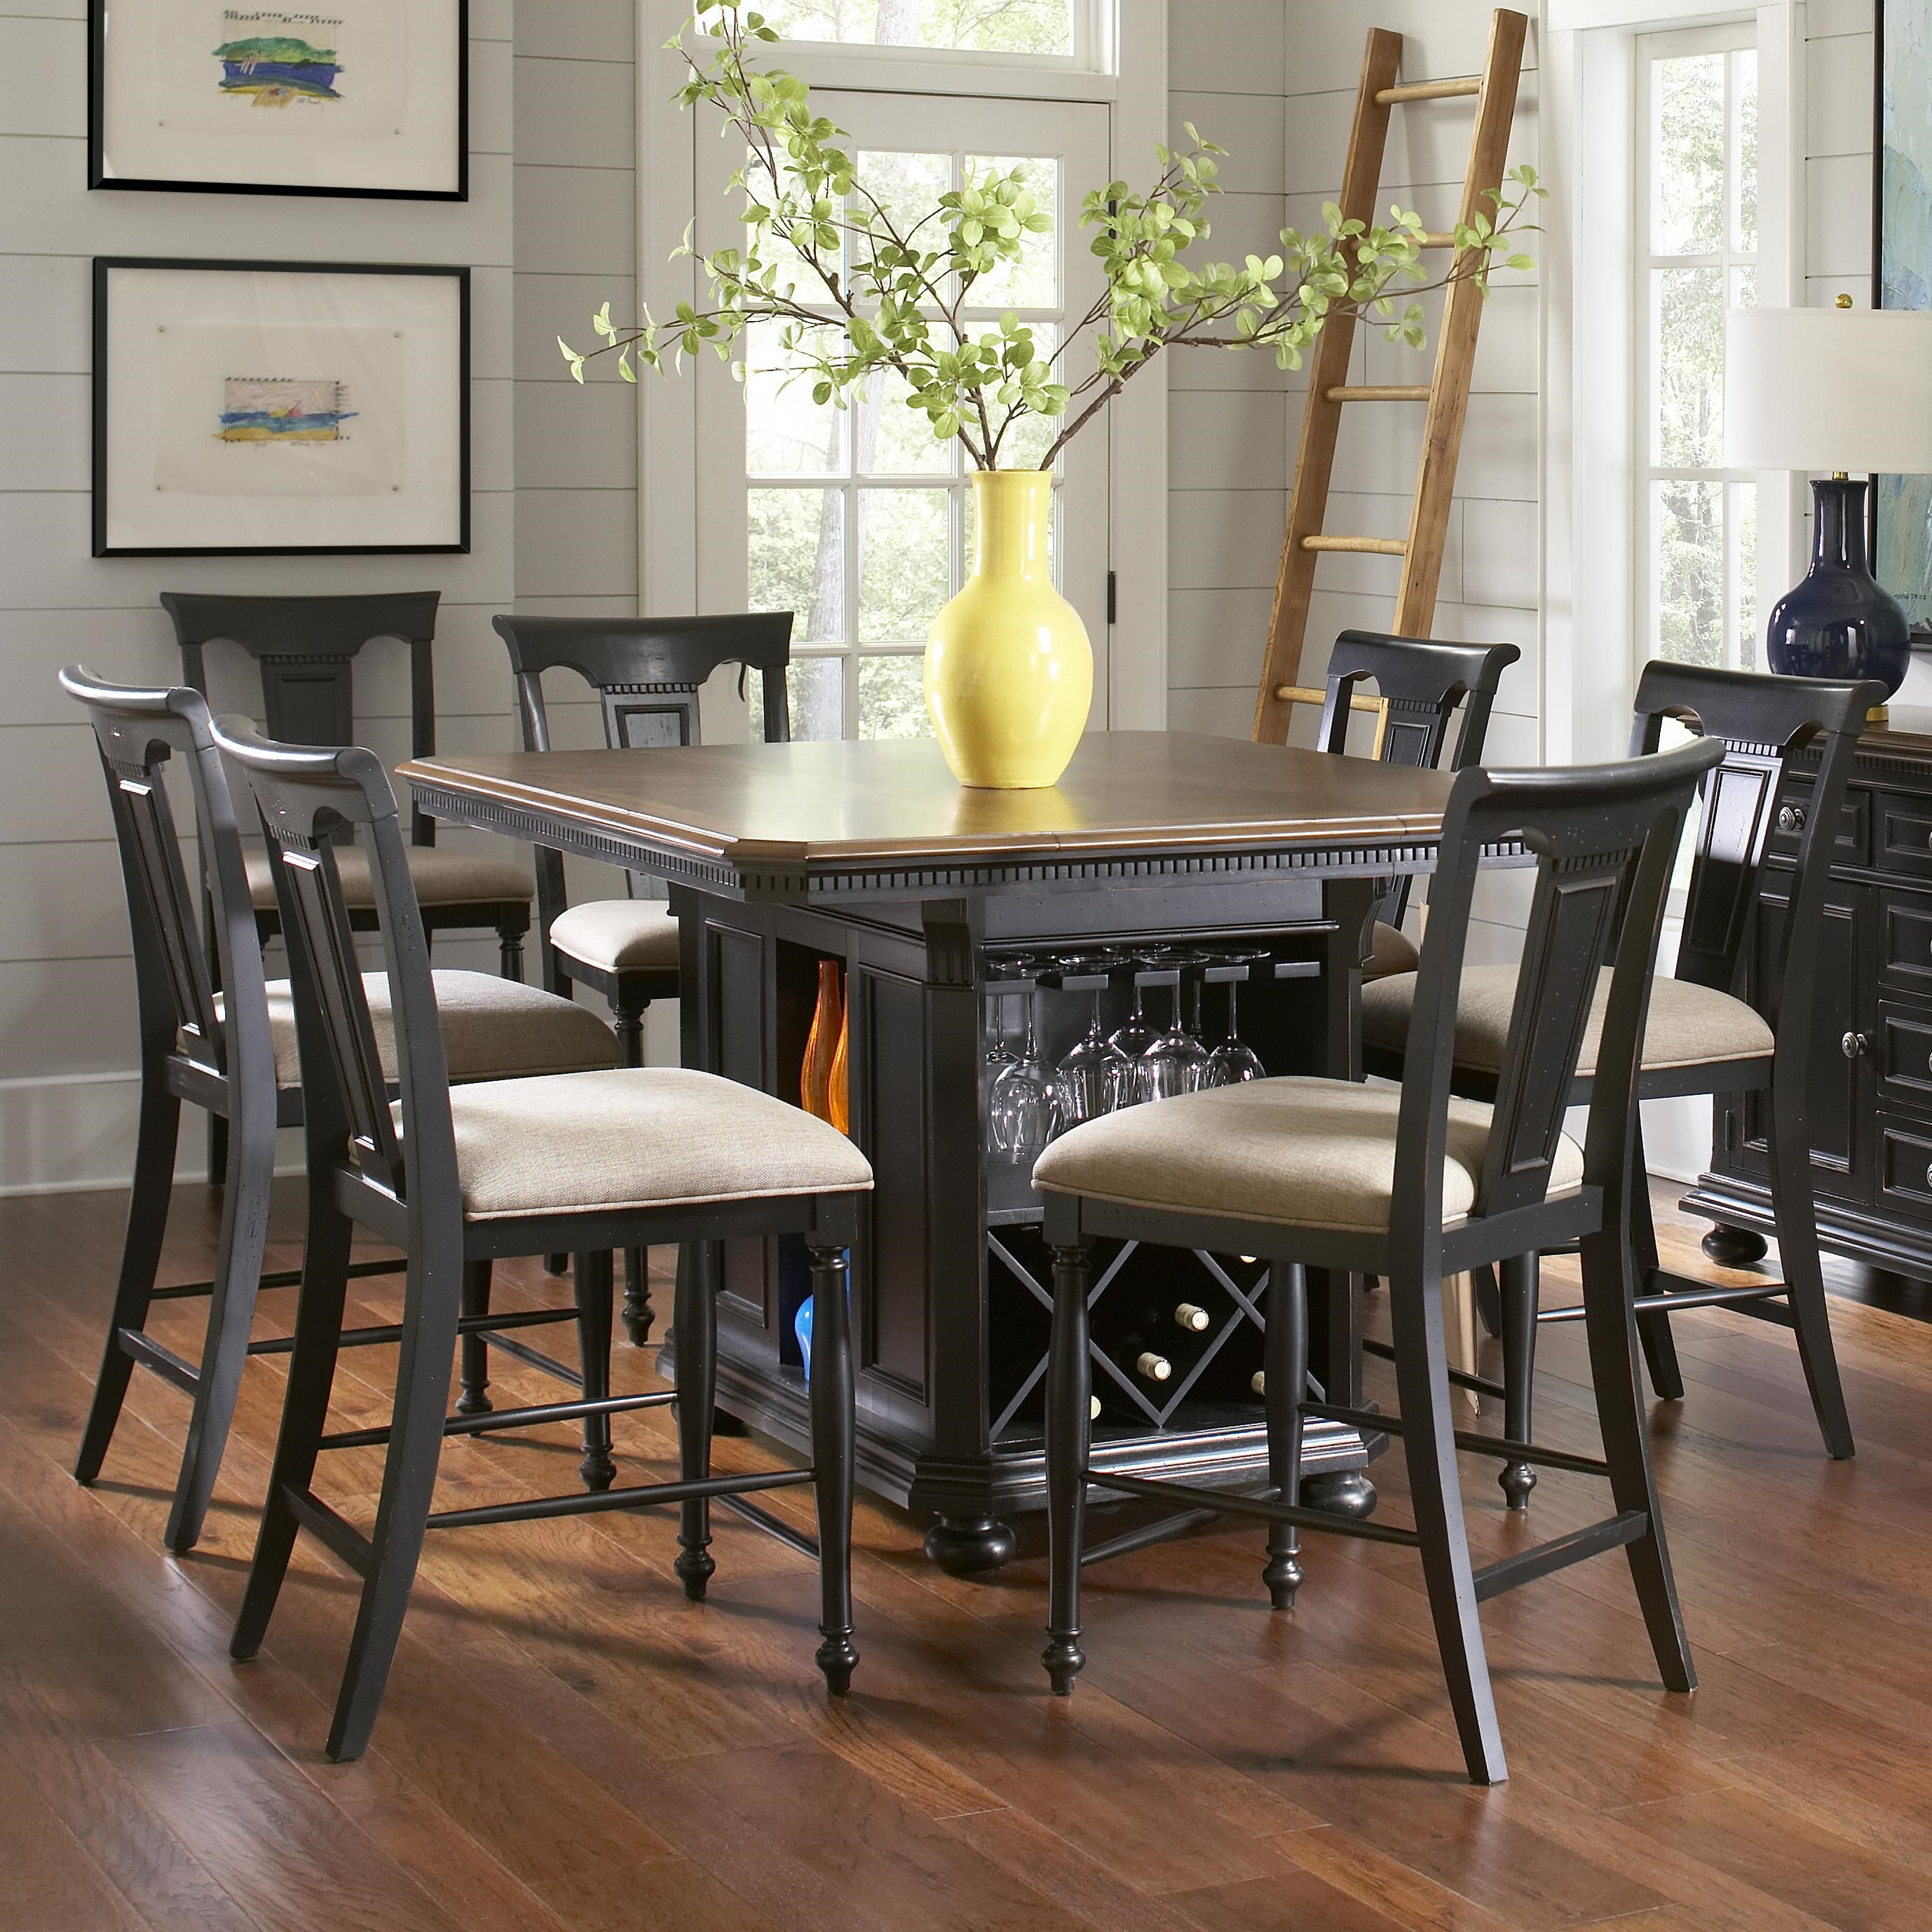 Avalon Furniture Rivington Hall Traditional 7 Piece Kitchen Island/Counter  Table Set